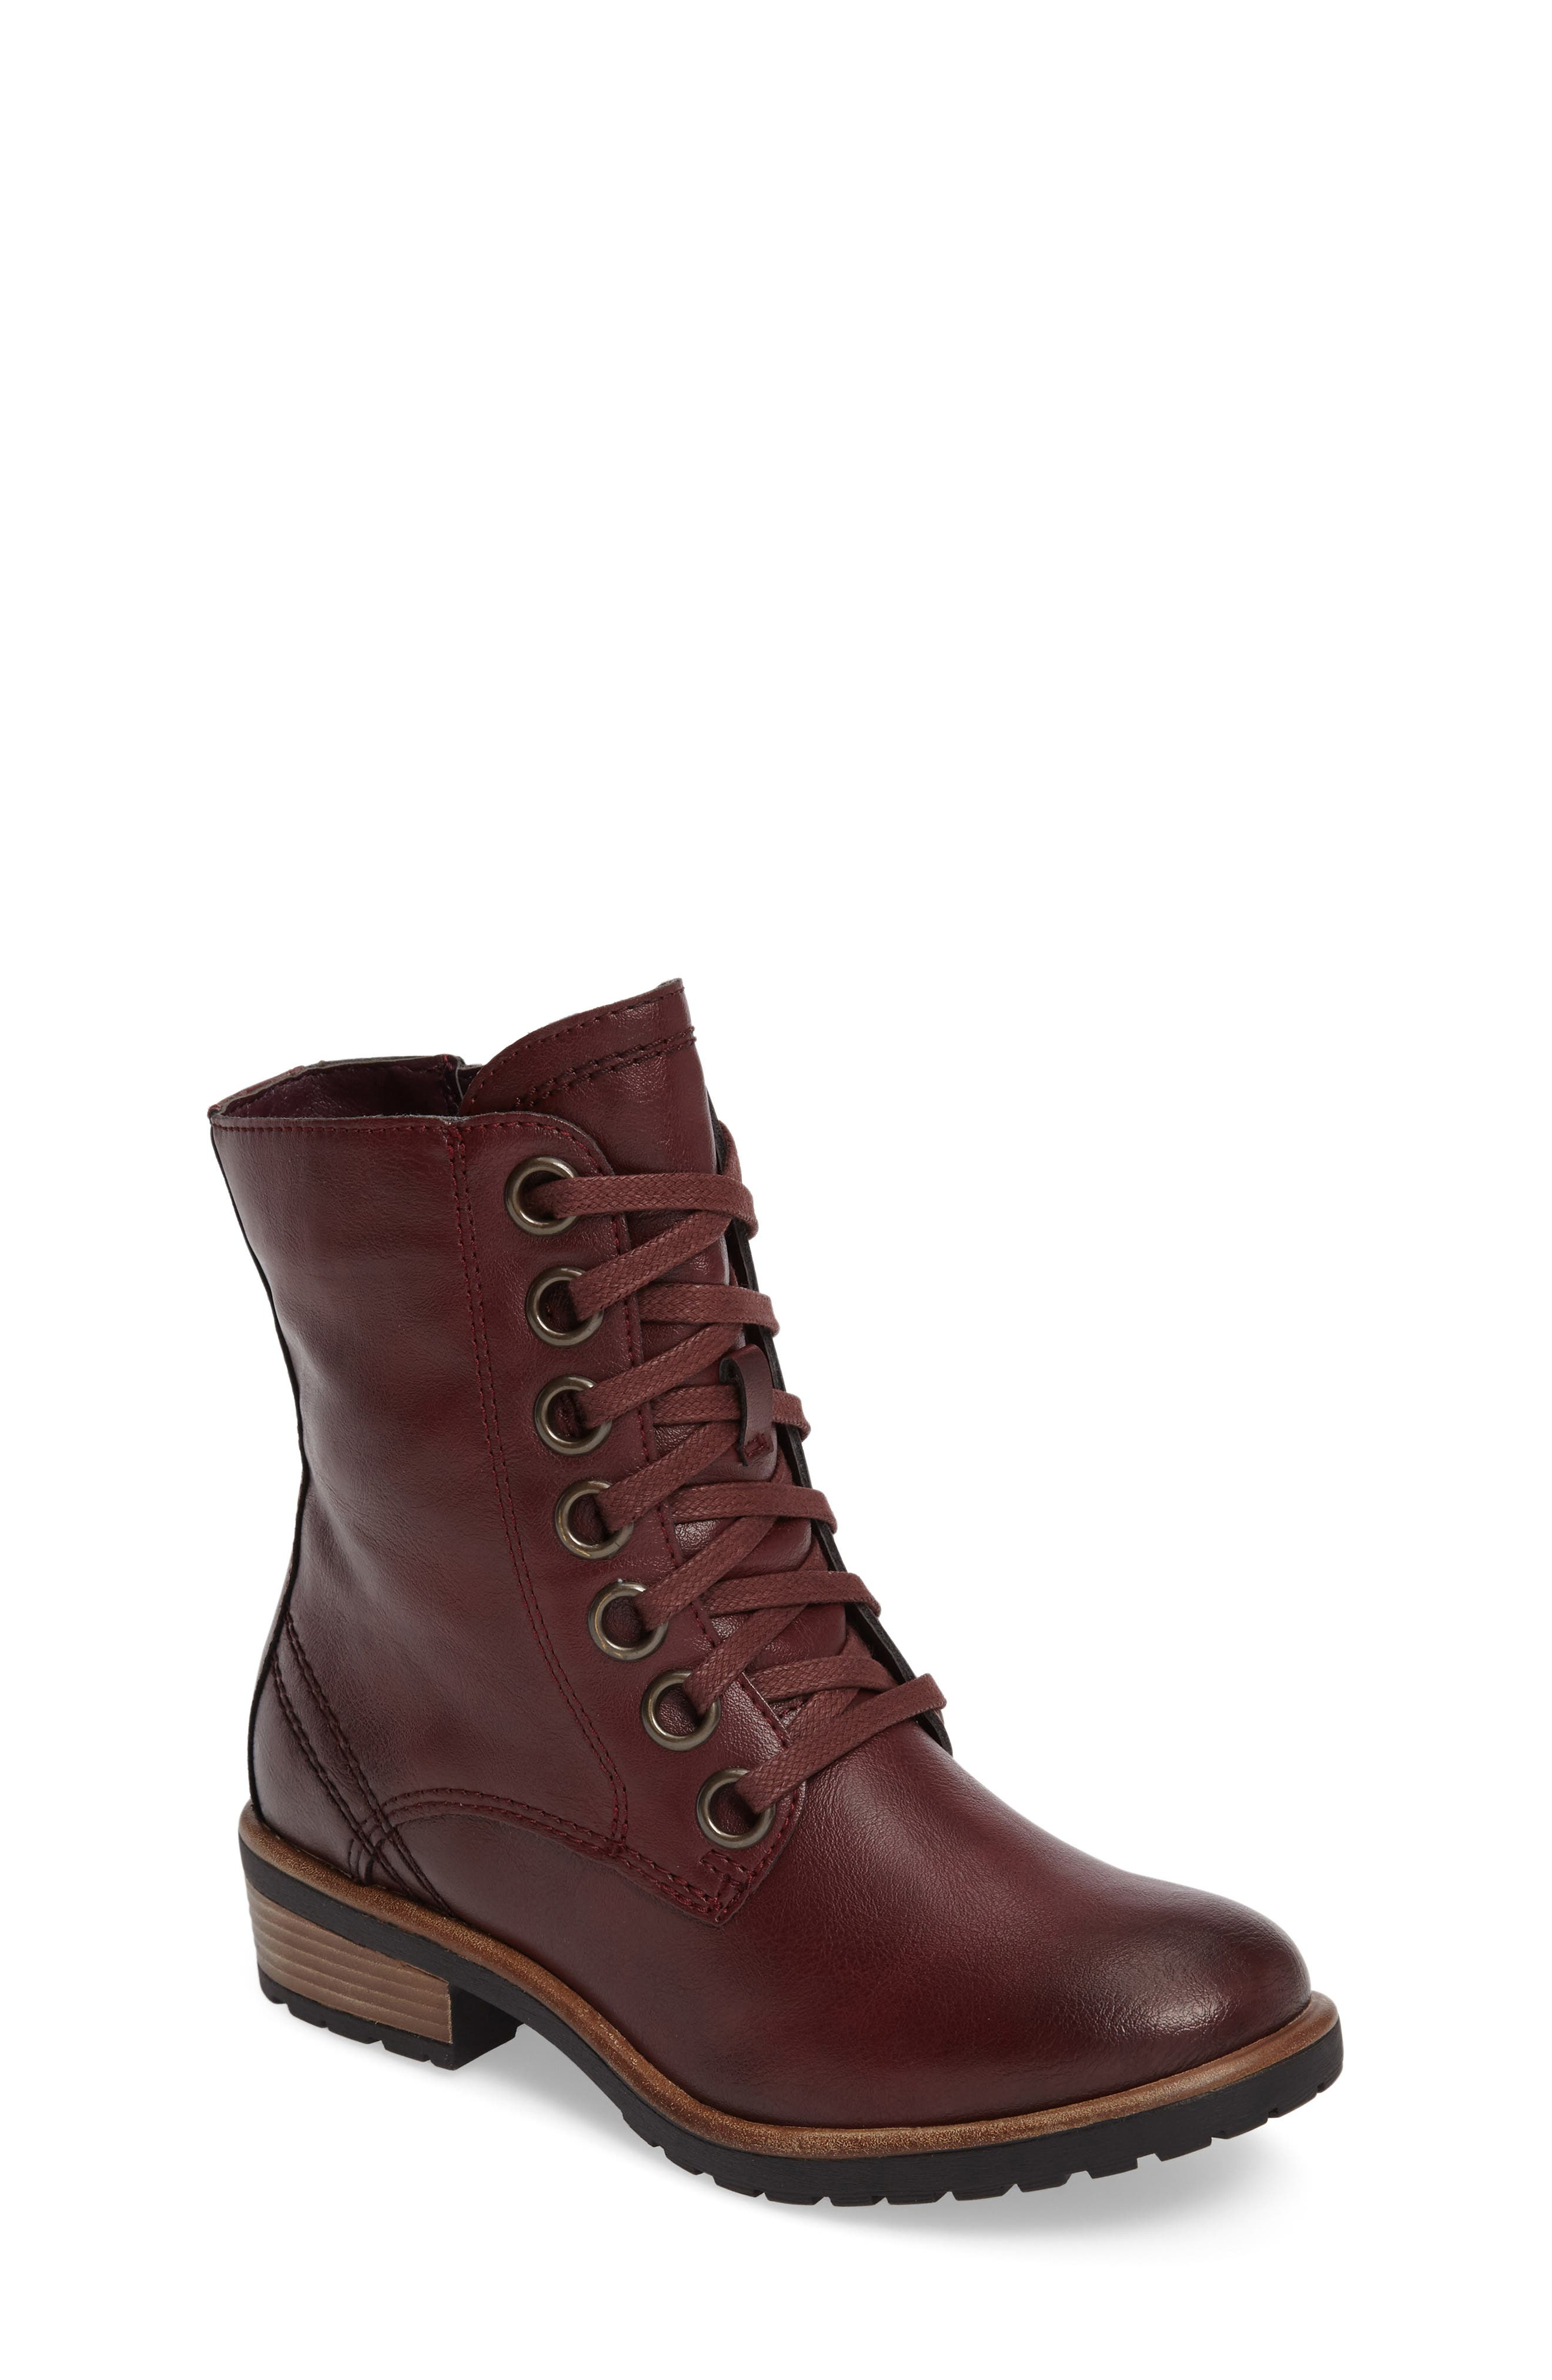 TUCKER + TATE 'Amsterdam' Lace Up Boot